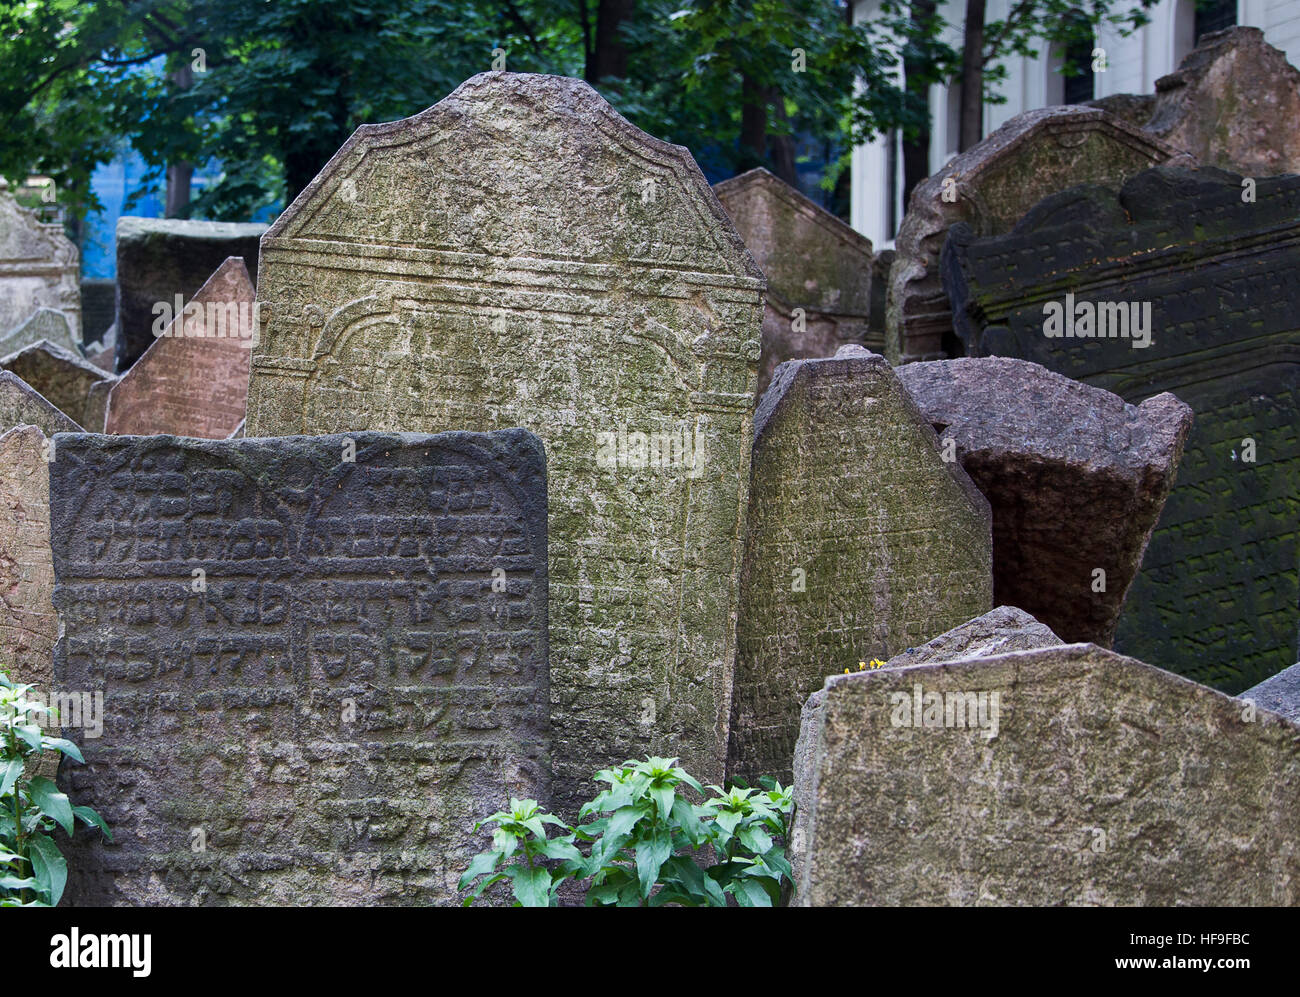 PRAGUE, CZECH REPUBLIC - June 19, 2015: Abandoned tombstones at the Old Jewish Cemetery in Prague, Czech Republic. - Stock Image